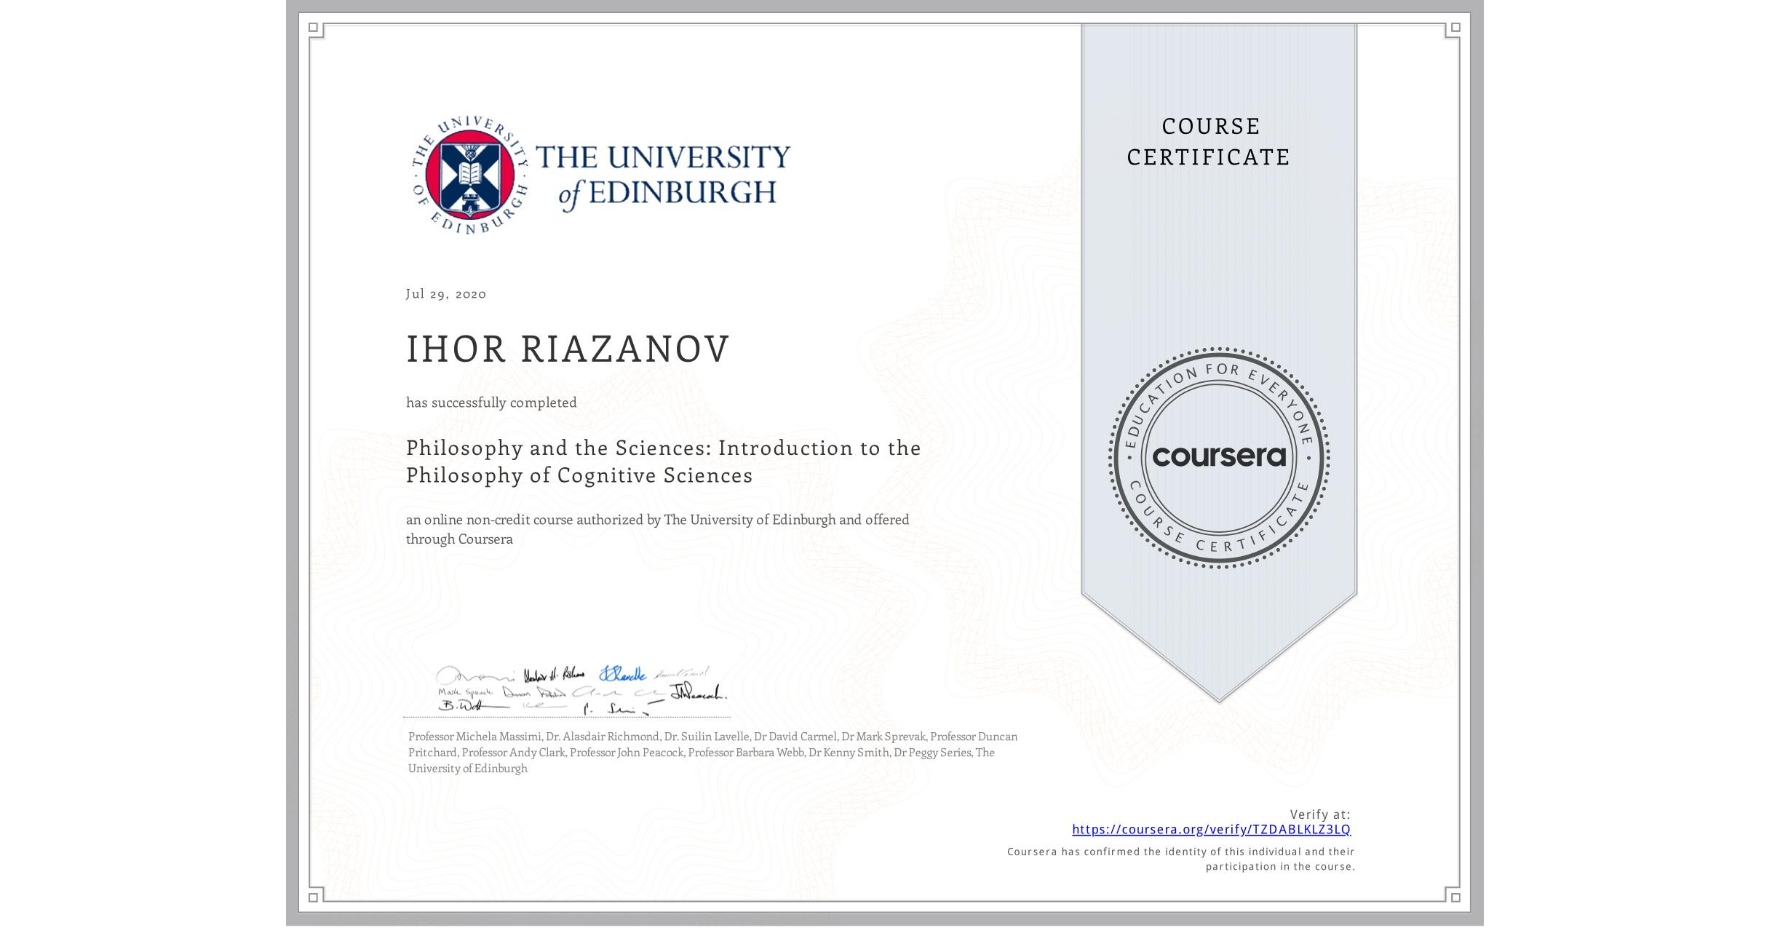 View certificate for IHOR RIAZANOV, Philosophy and the Sciences: Introduction to the Philosophy of Cognitive Sciences, an online non-credit course authorized by The University of Edinburgh and offered through Coursera